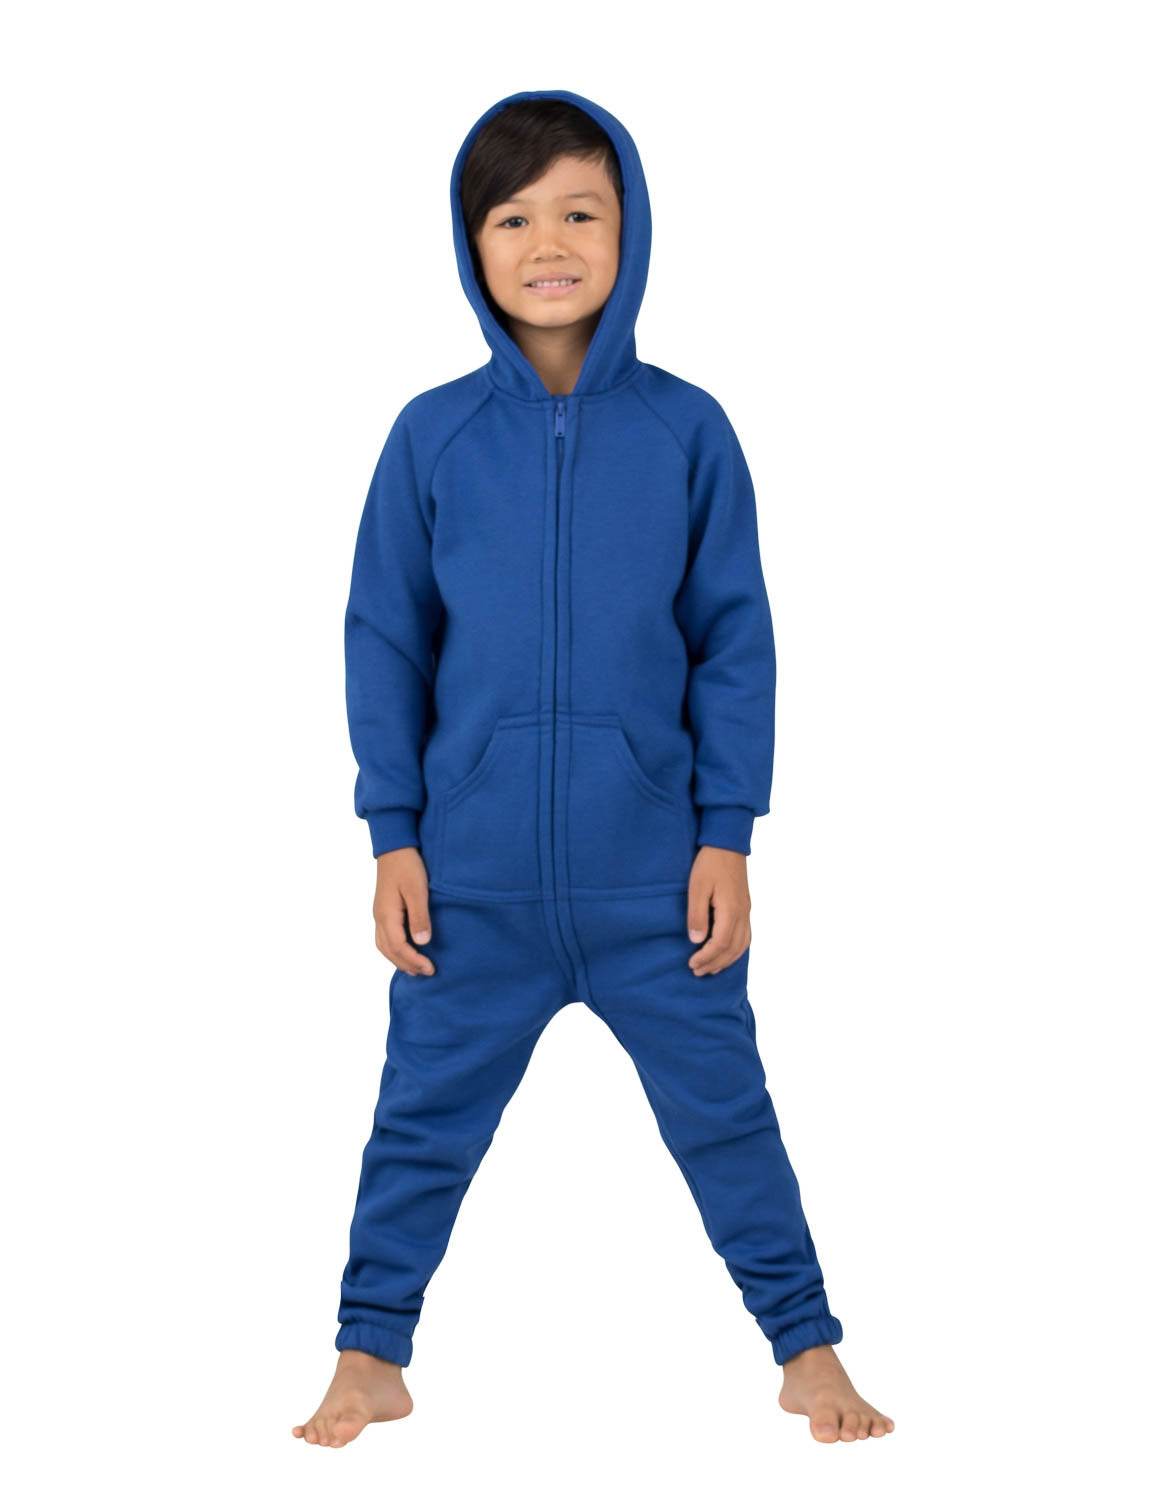 Blue Toddler Footless Hoodie Onesie